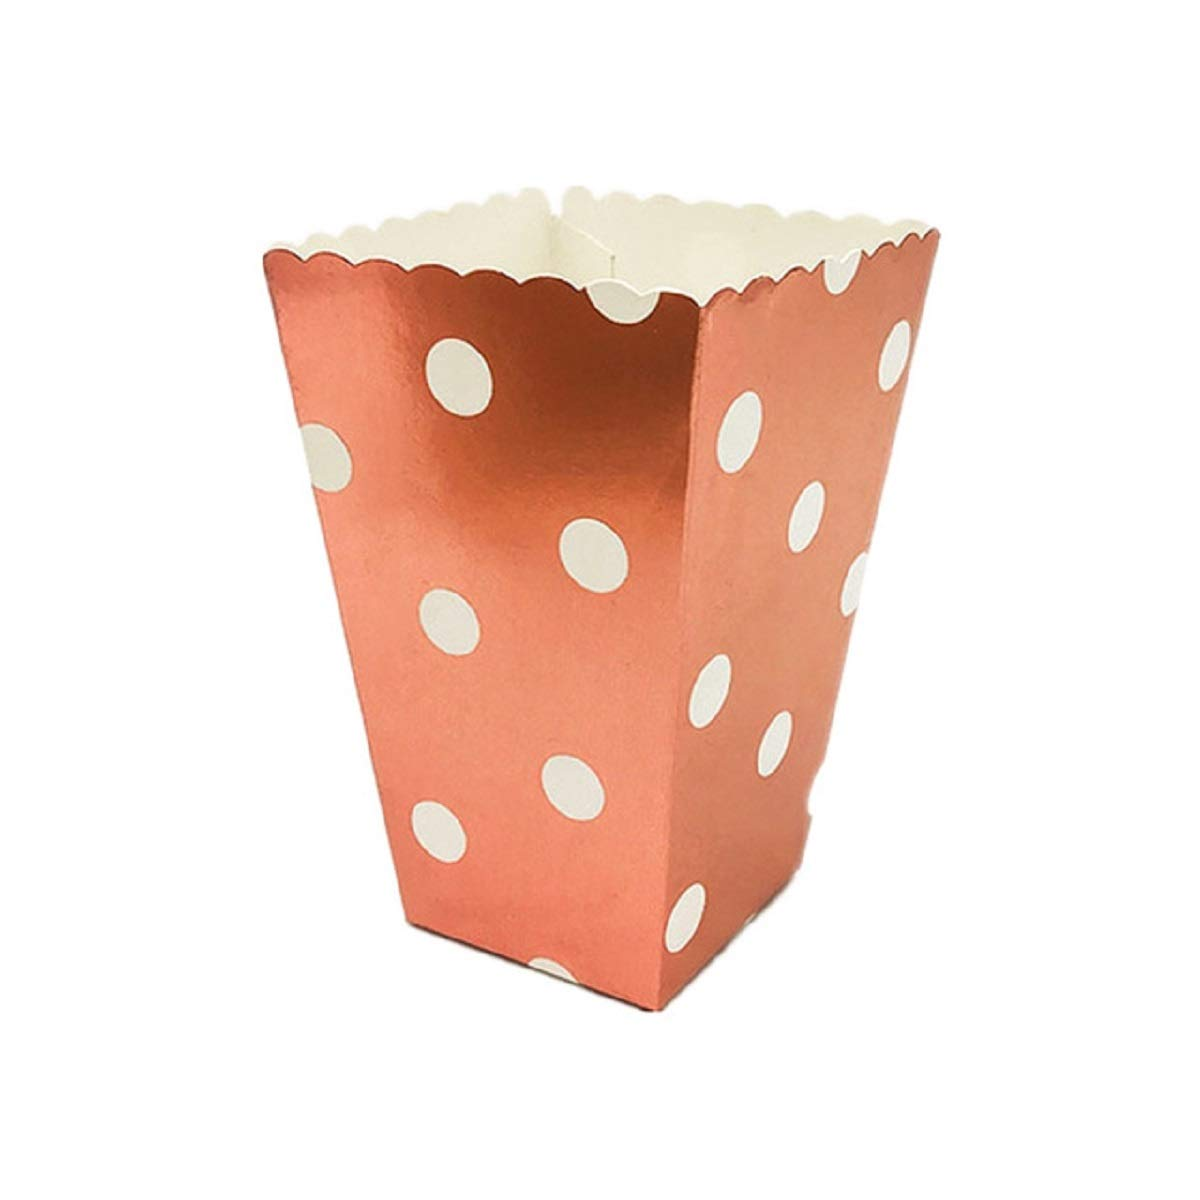 Allinlove 48 Pack Rose Gold Popcorn Boxes Classic Popcorn Paper Bags Popcorn Containers Cardboard for Dessert Tables Wedding Birthday Party Favors (Polka Dot)